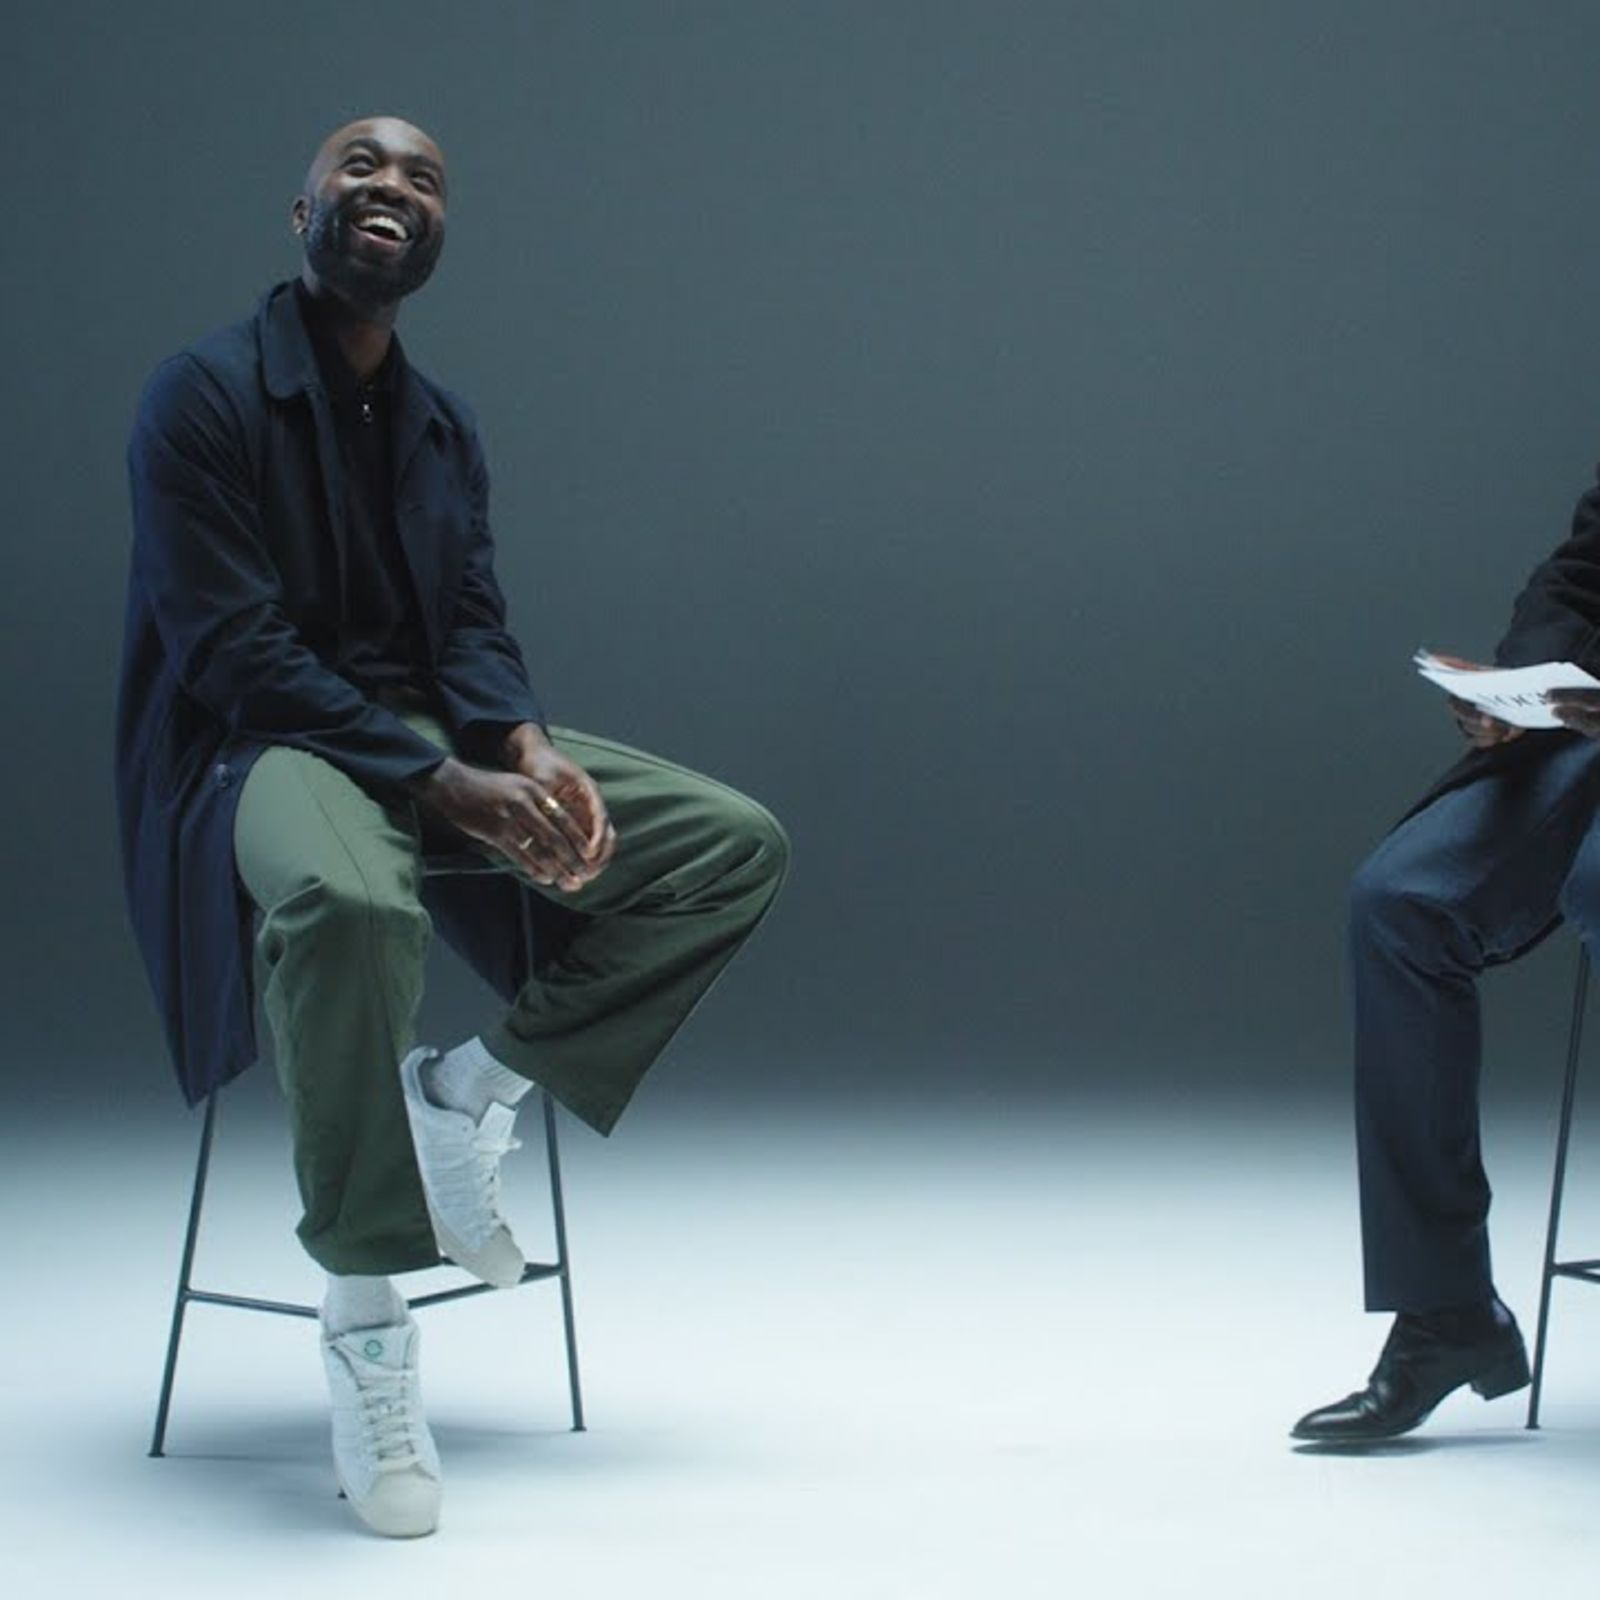 Forces For Change: The Extra Mile With Edward Enninful And Paapa Essiedu   British Vogue & BMW